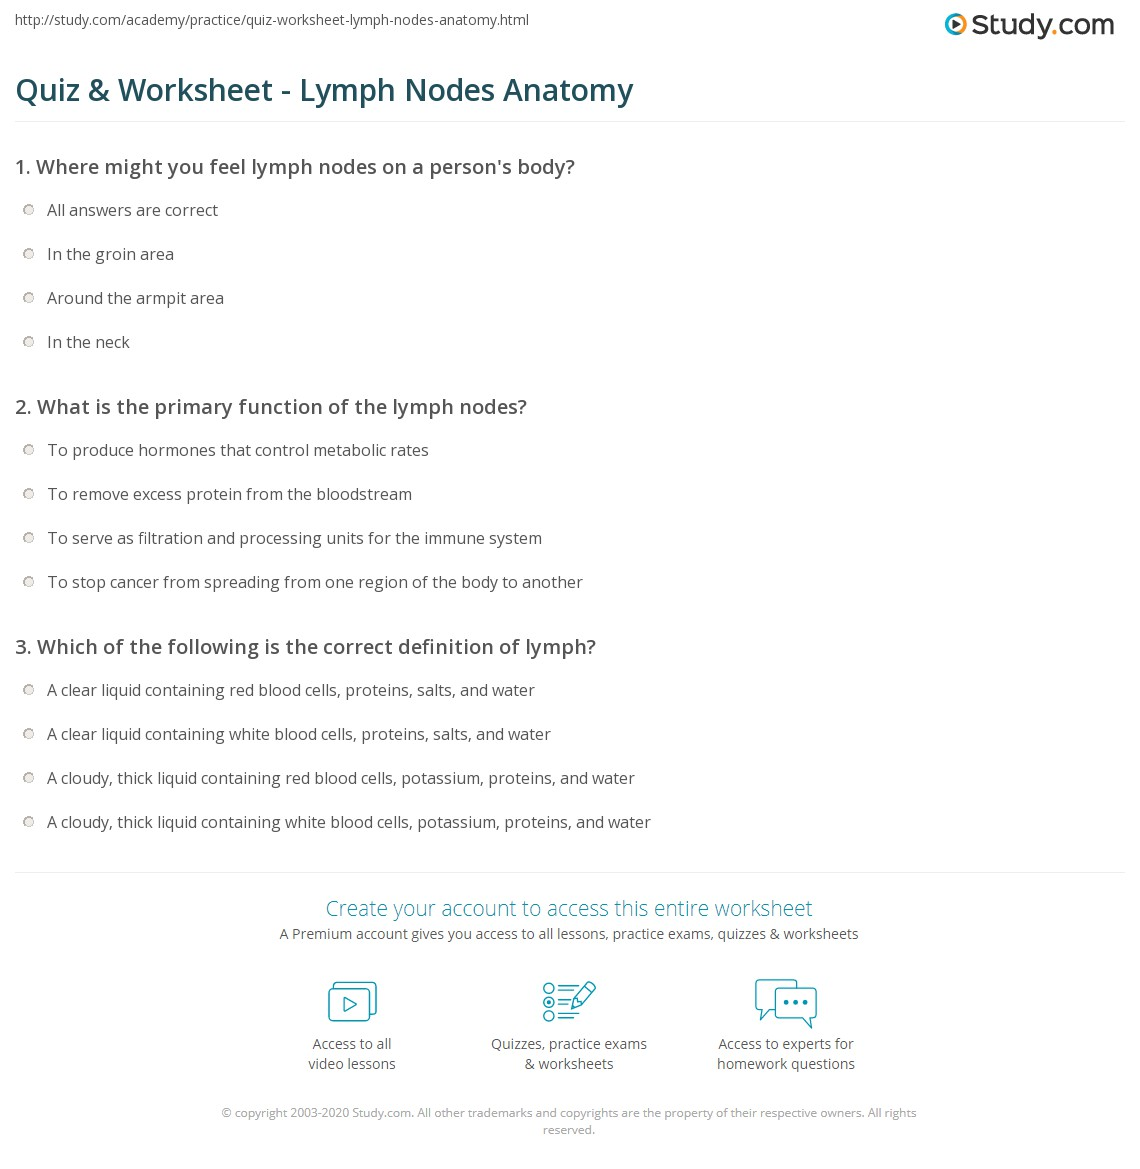 Quiz & Worksheet - Lymph Nodes Anatomy | Study.com